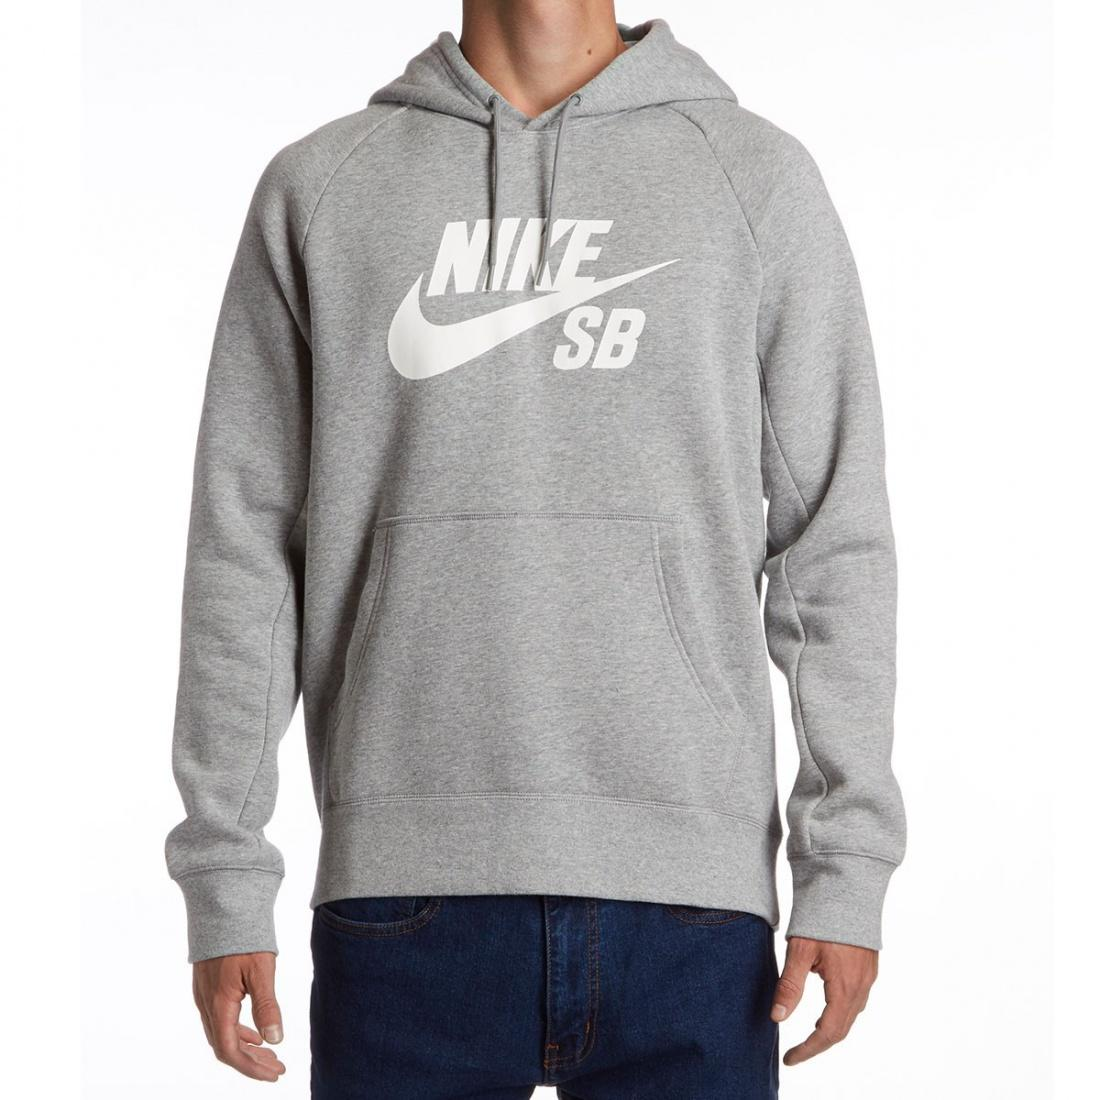 Nike SB Джемпер NIKE SB ICON PO HOODIE DK GREY HEATHER/WHITE M